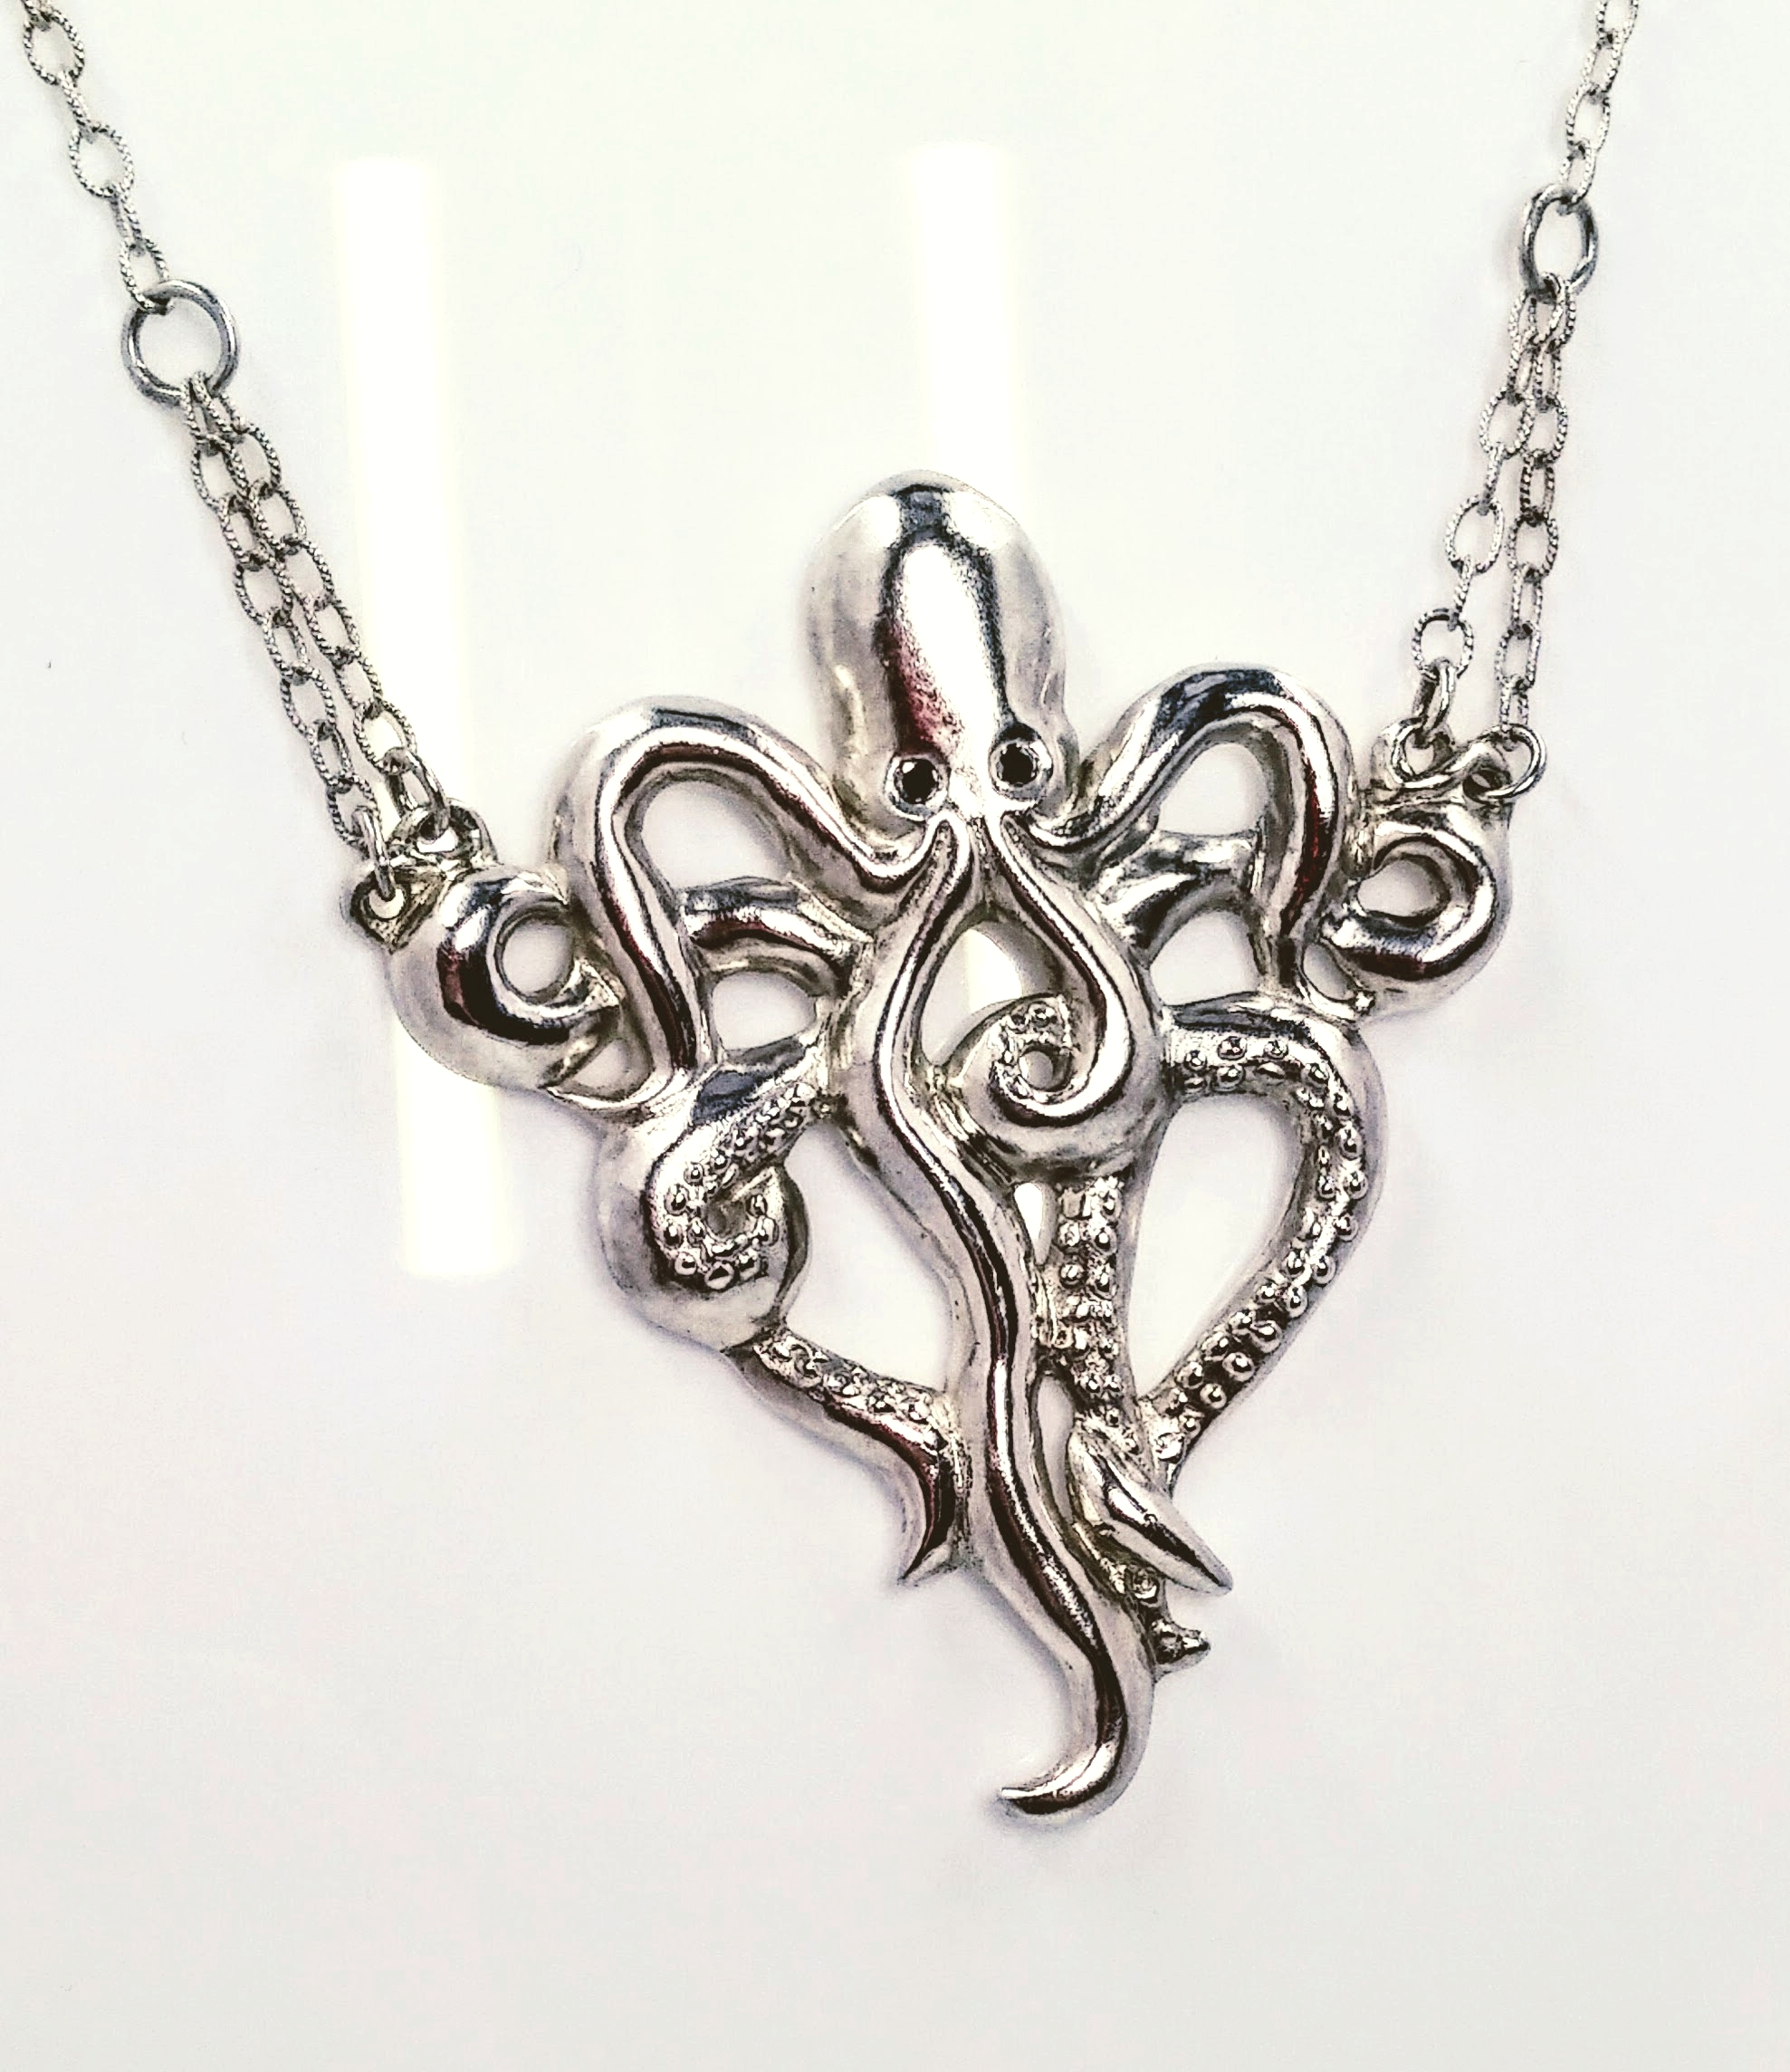 Large silver octopus necklace with black diamond eyes - SOLD